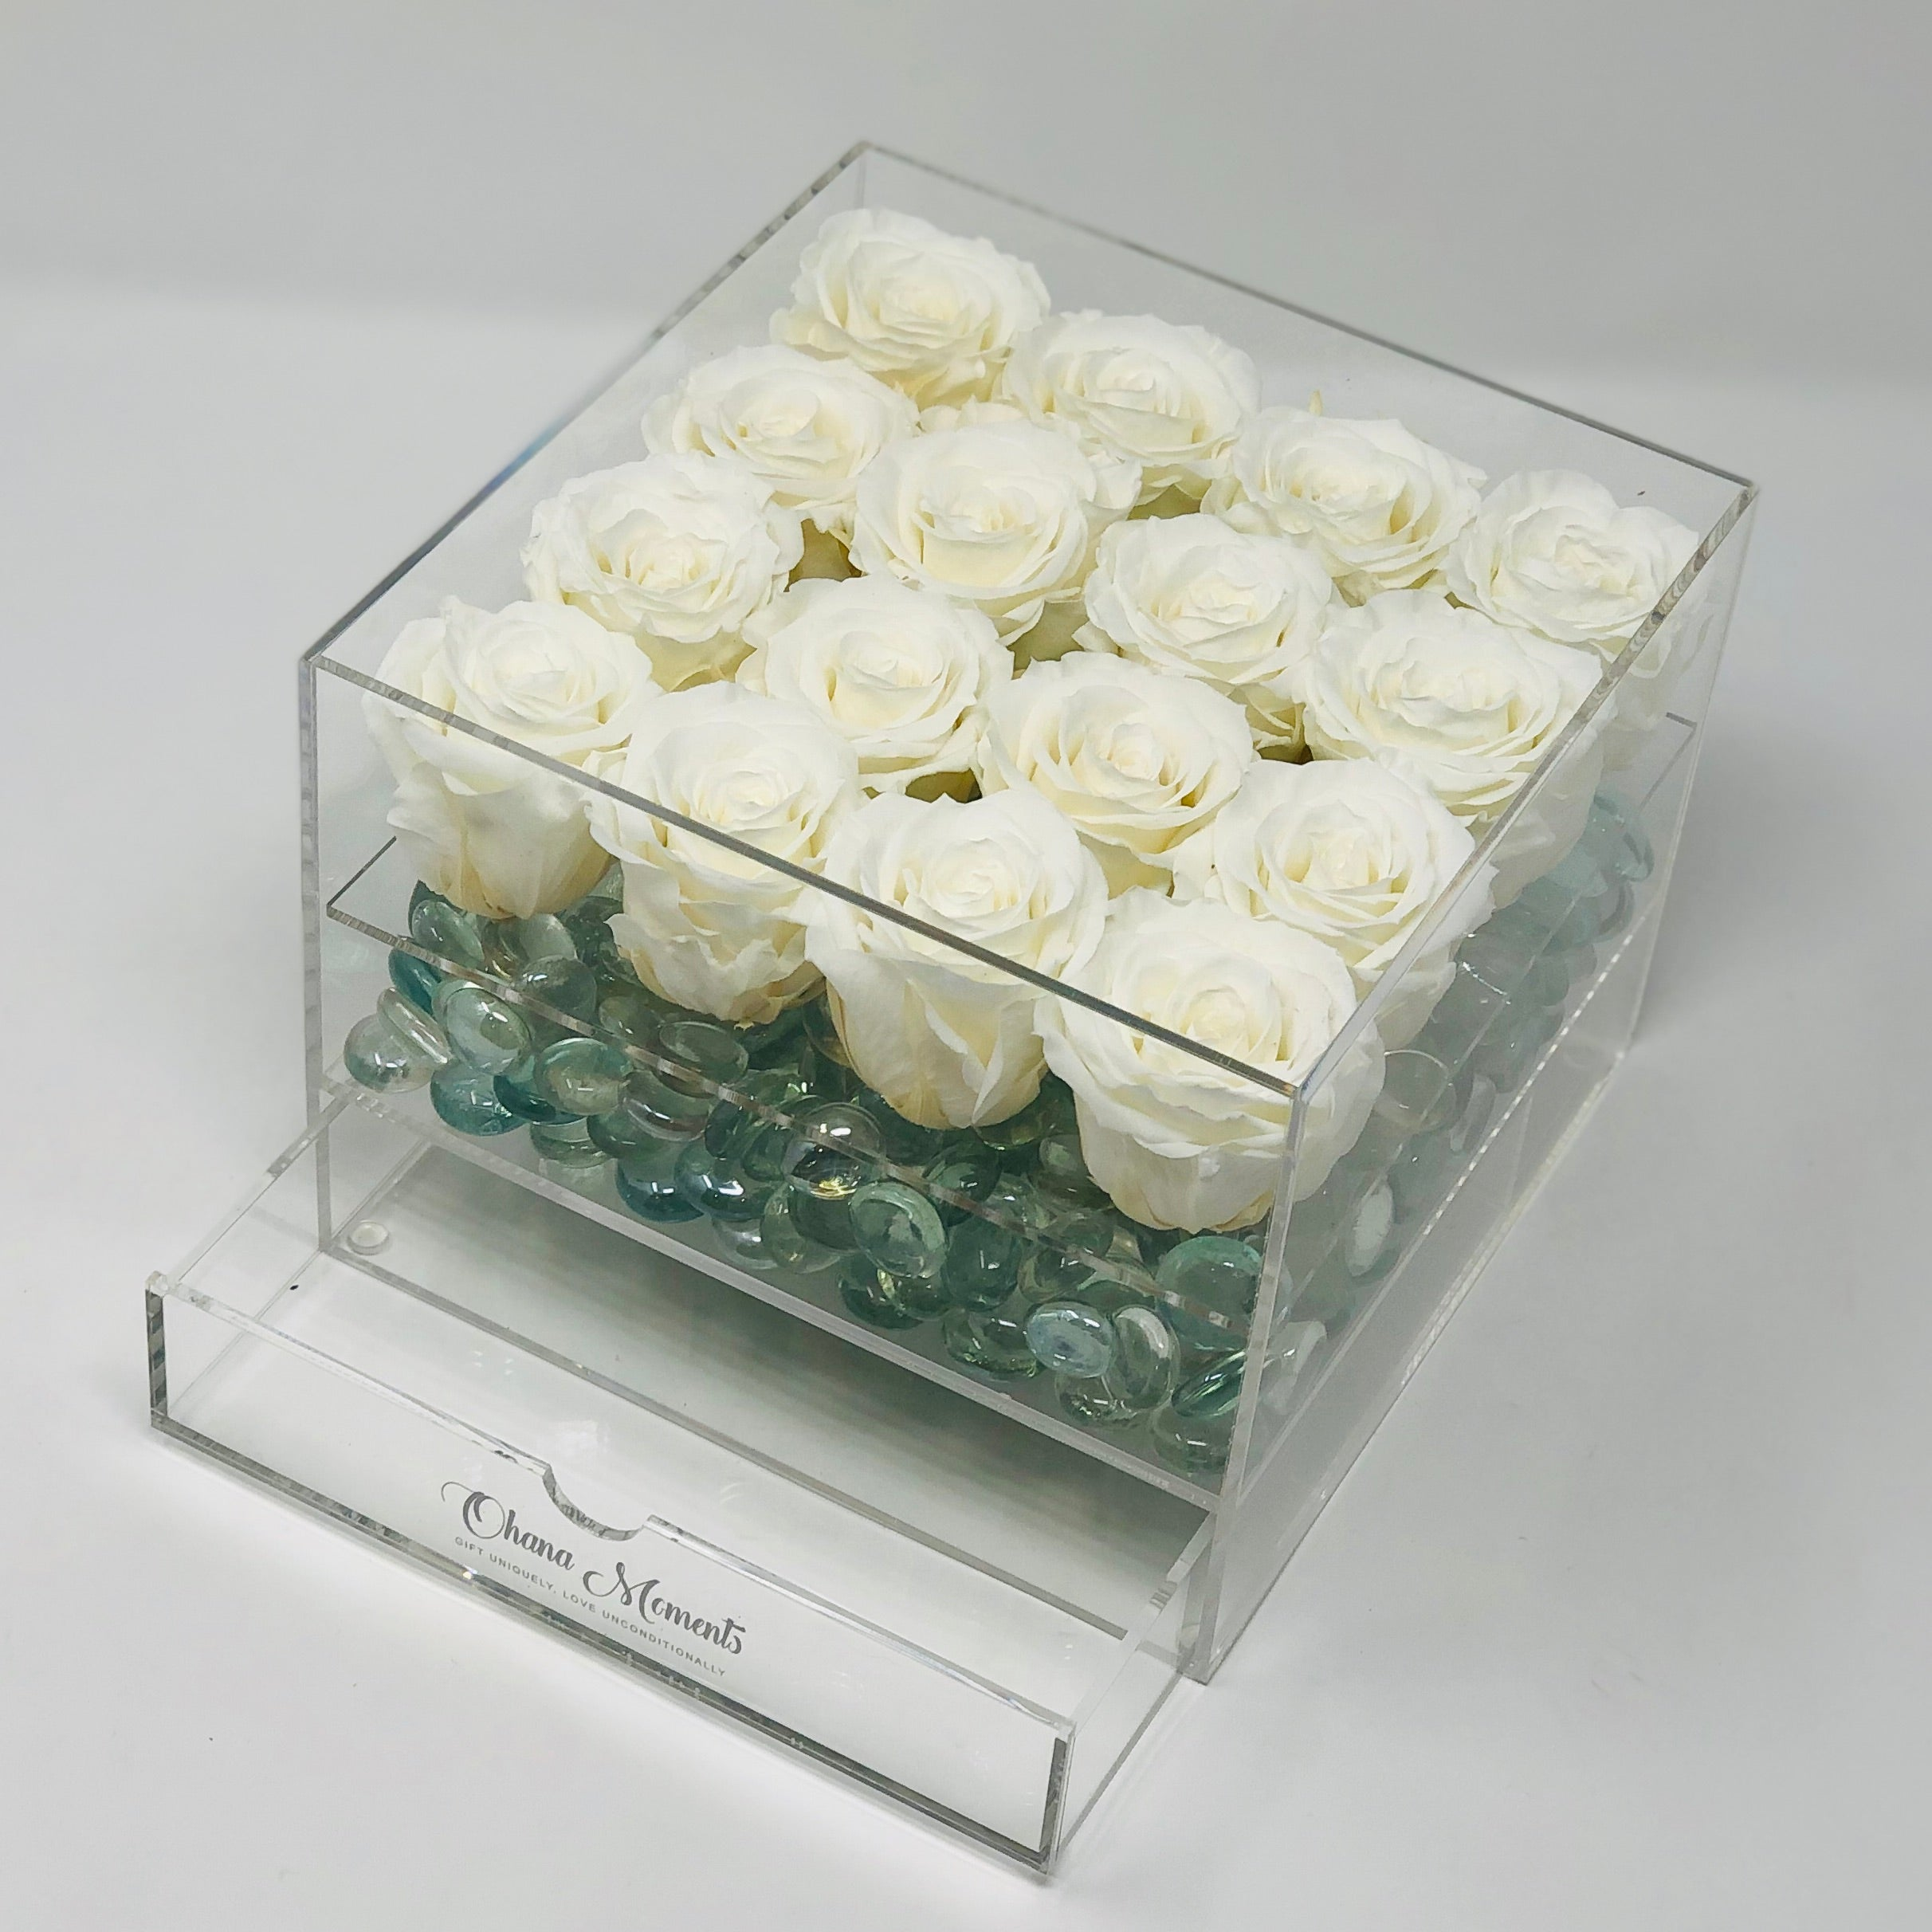 Forever Roses that last for years not days in all white roses. Jewelry box